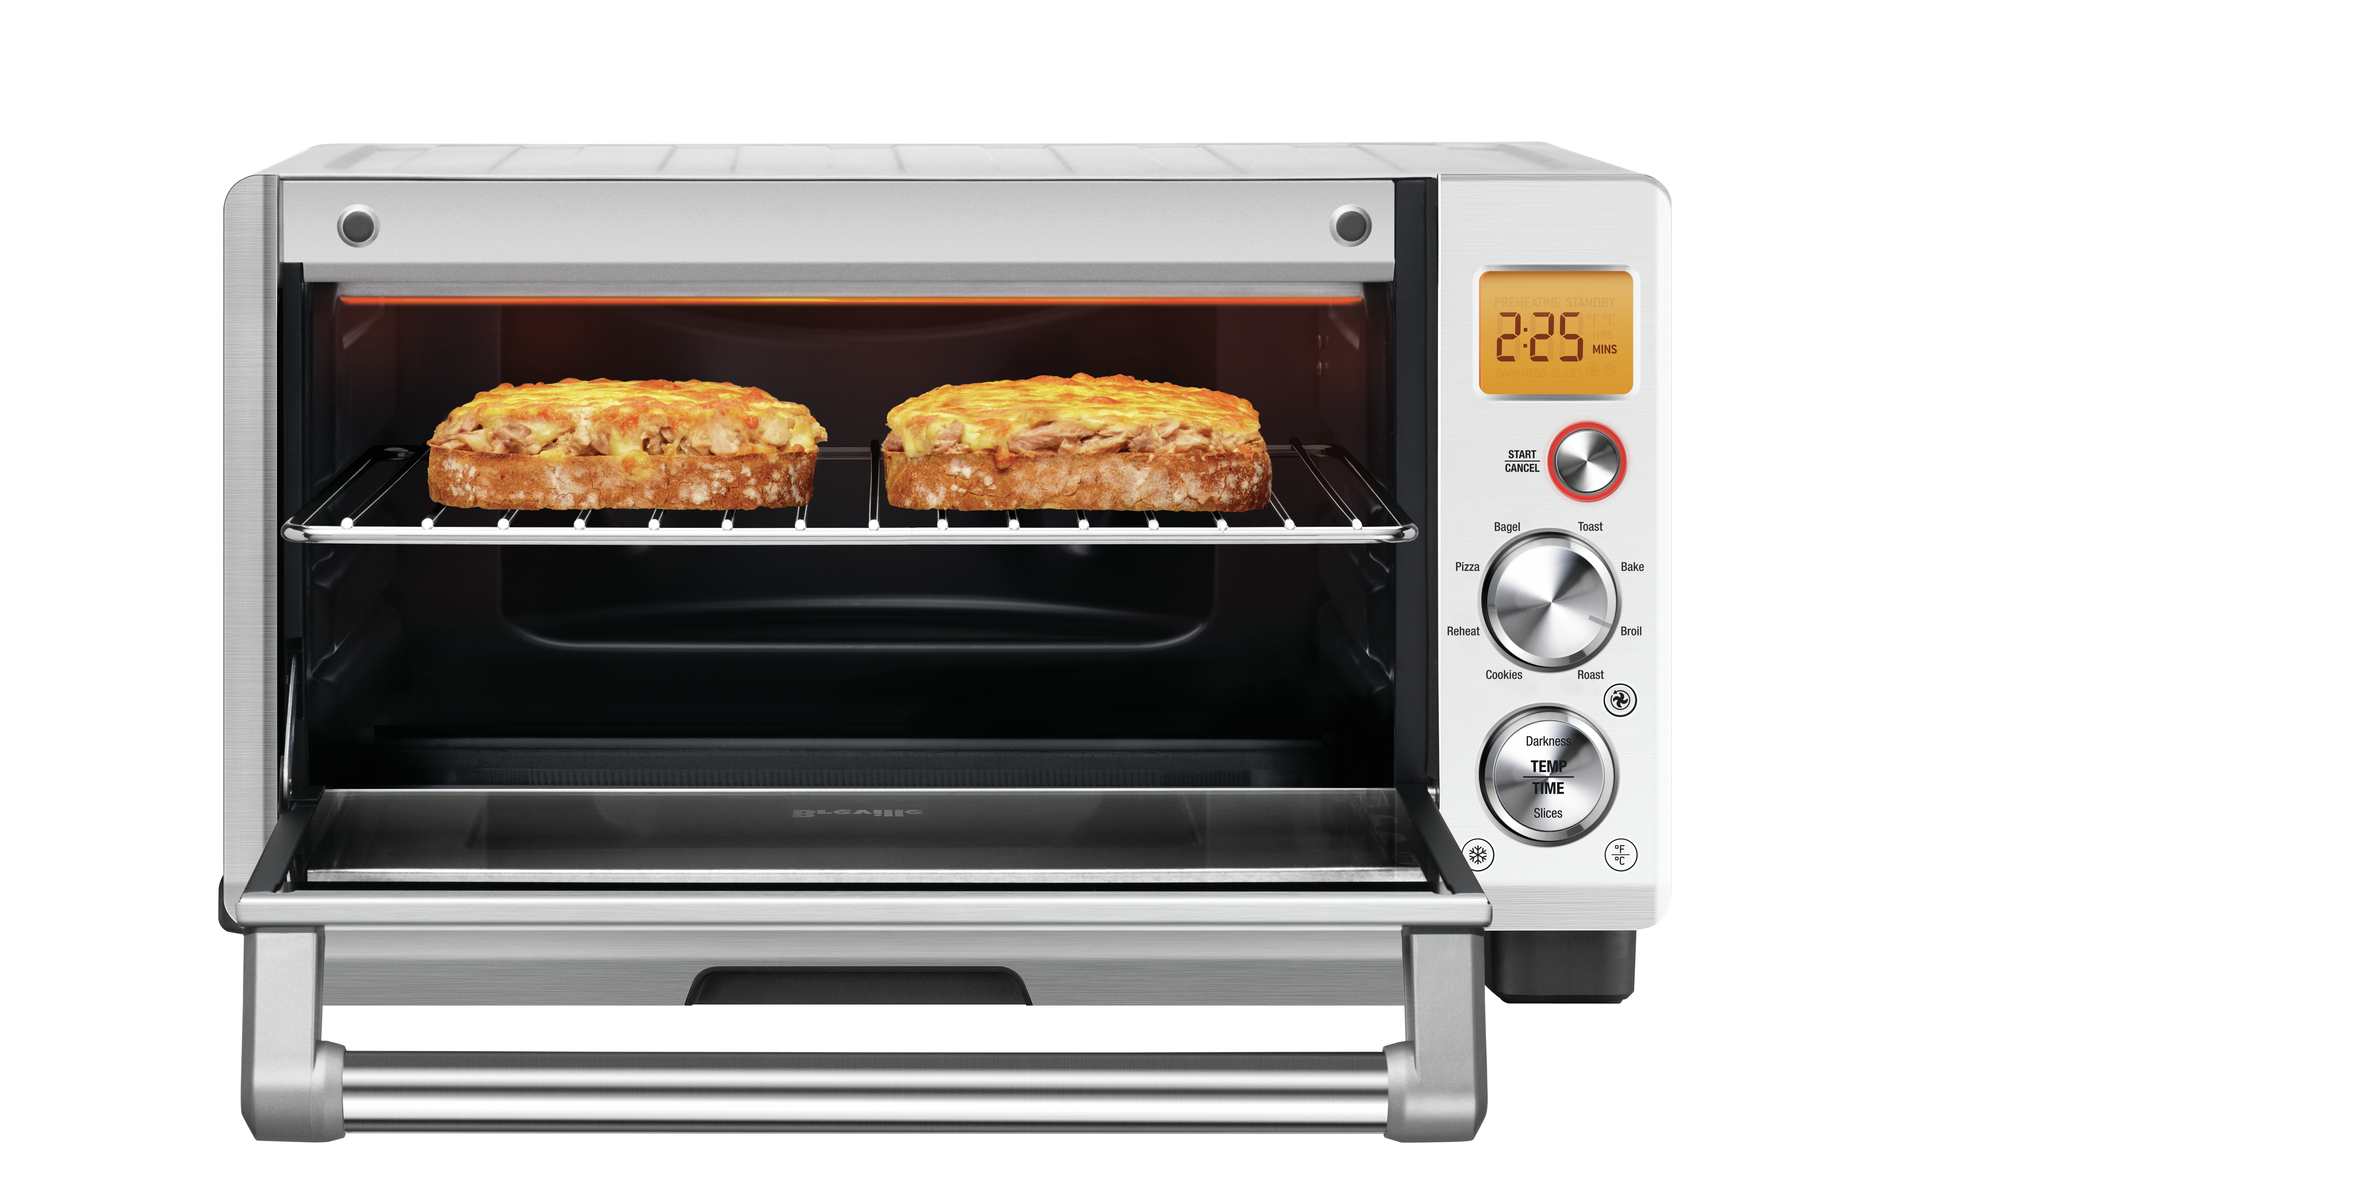 the Smart Oven® Compact Convection Oven in Brushed Stainless Steel compact capacity